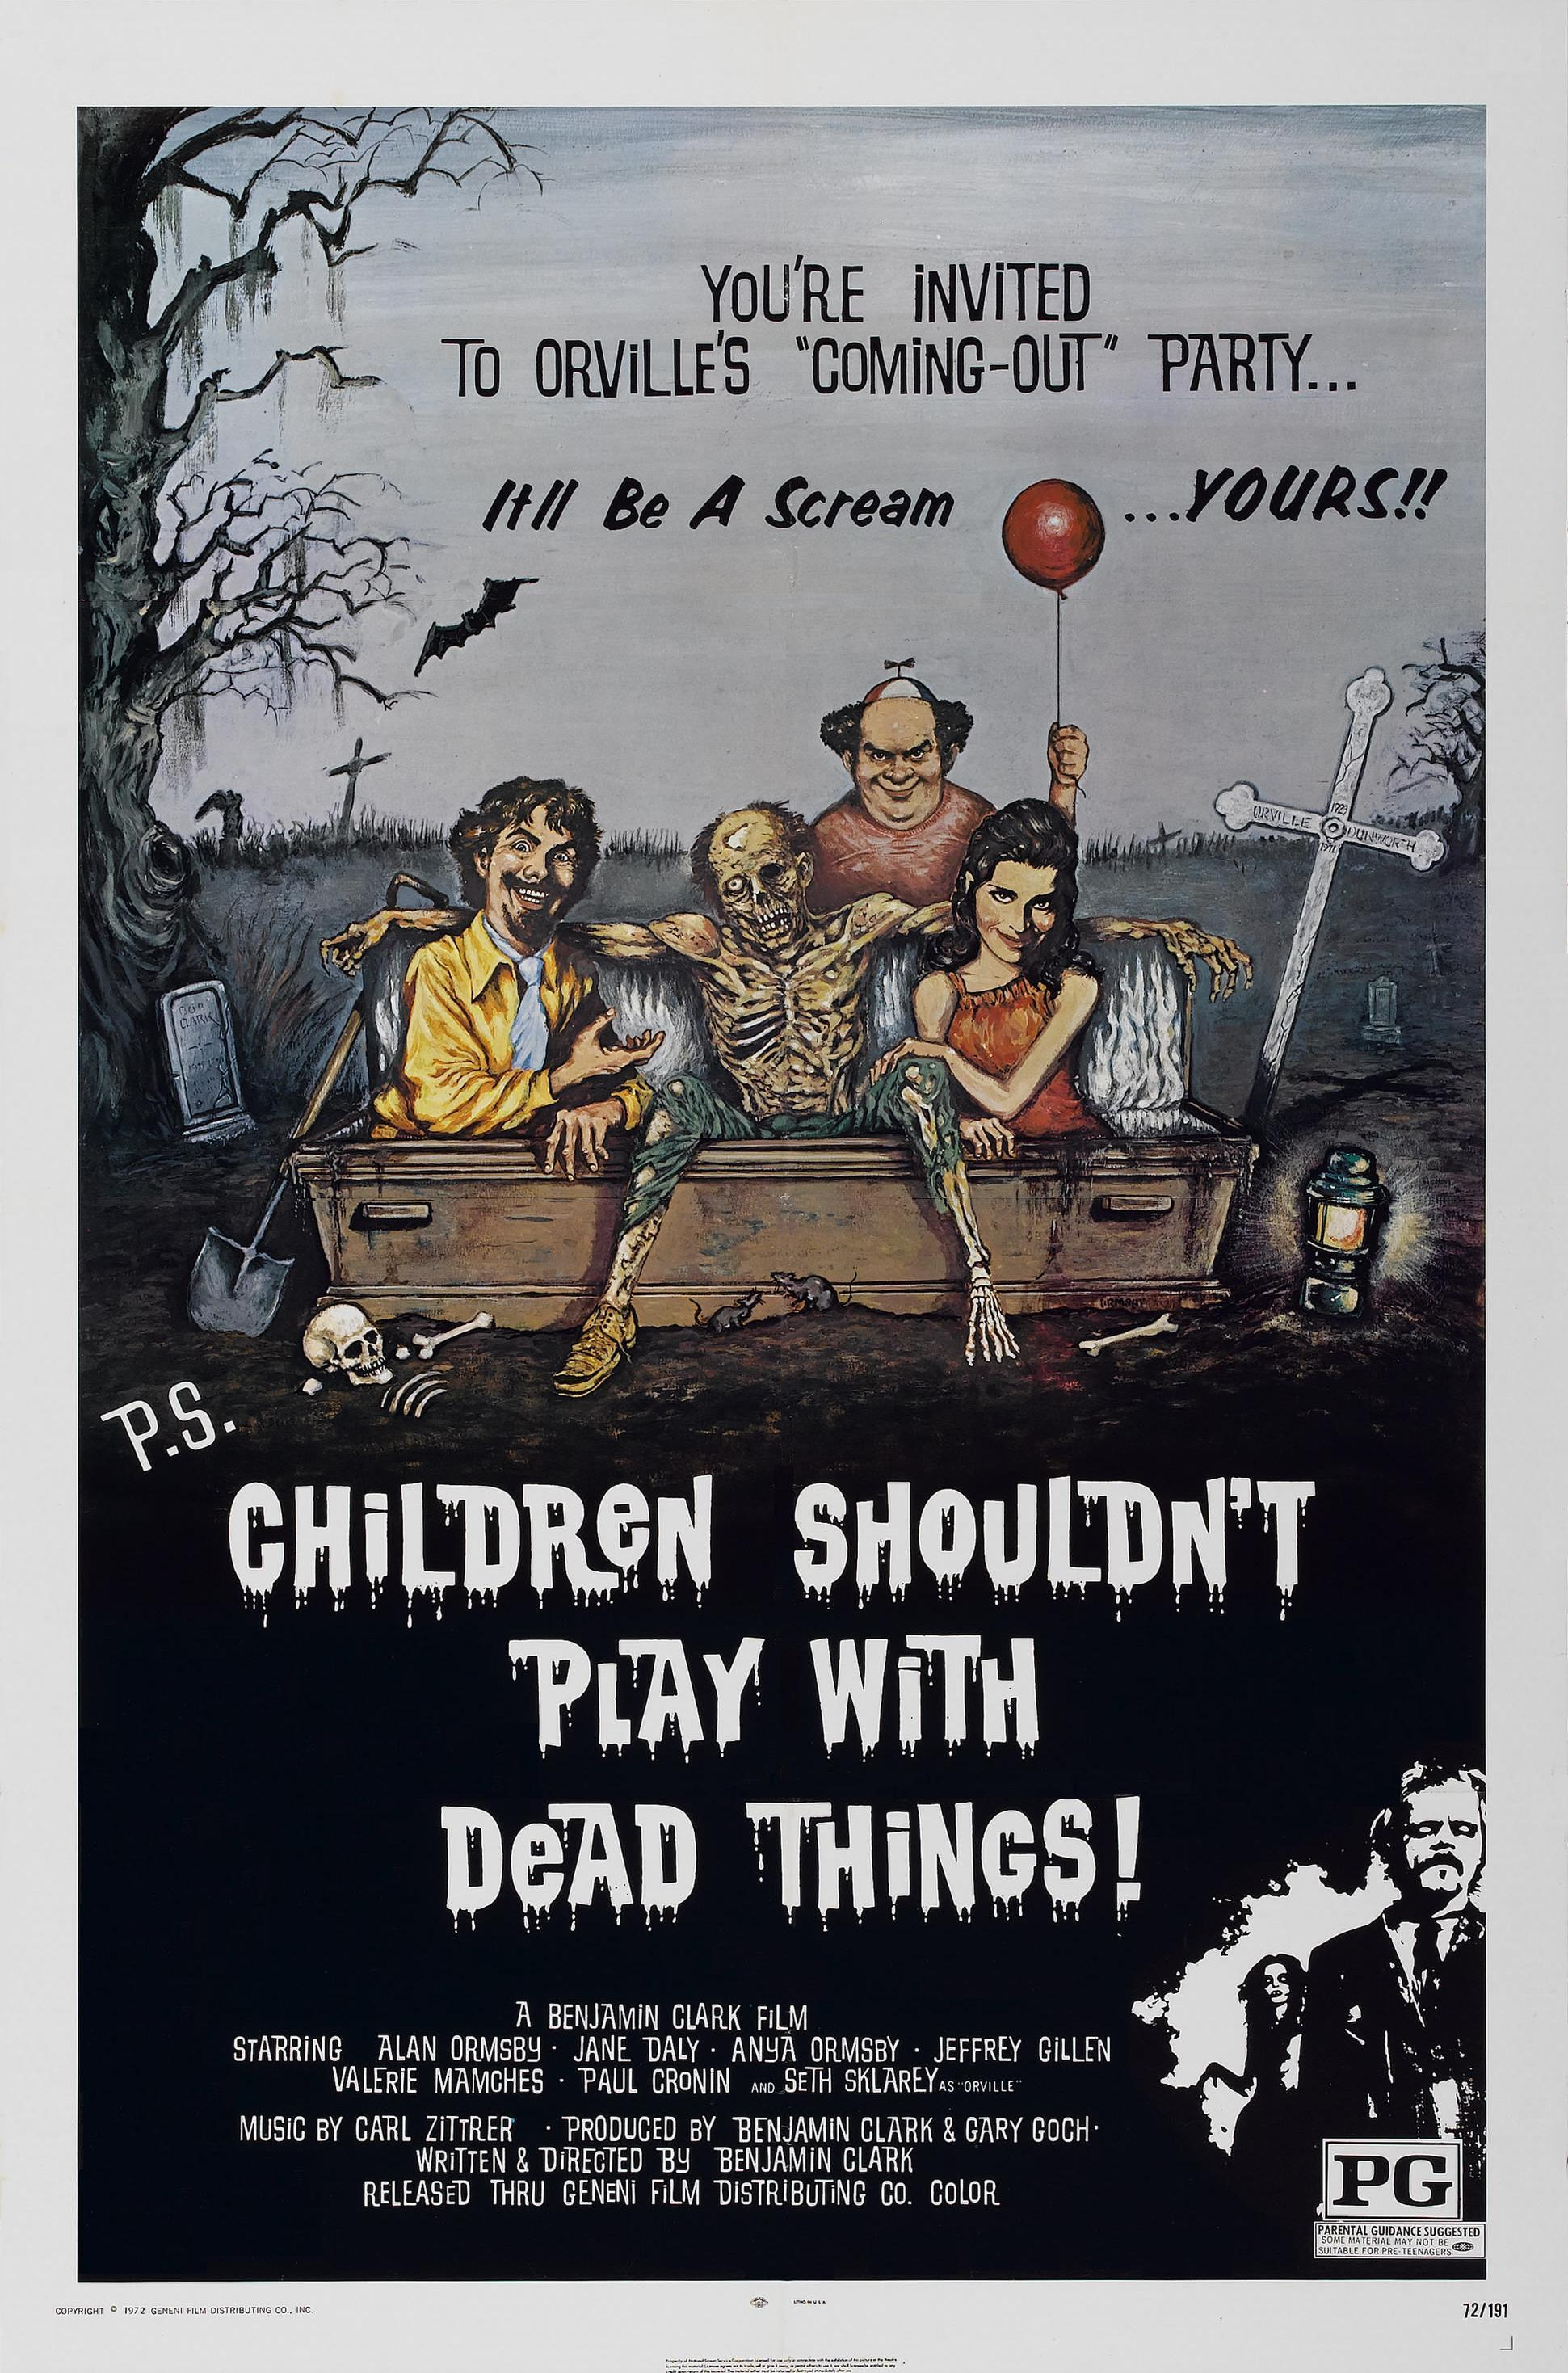 POSTER - CHILDREN SHOULDN'T PLAY WITH DEAD THINGS.JPG